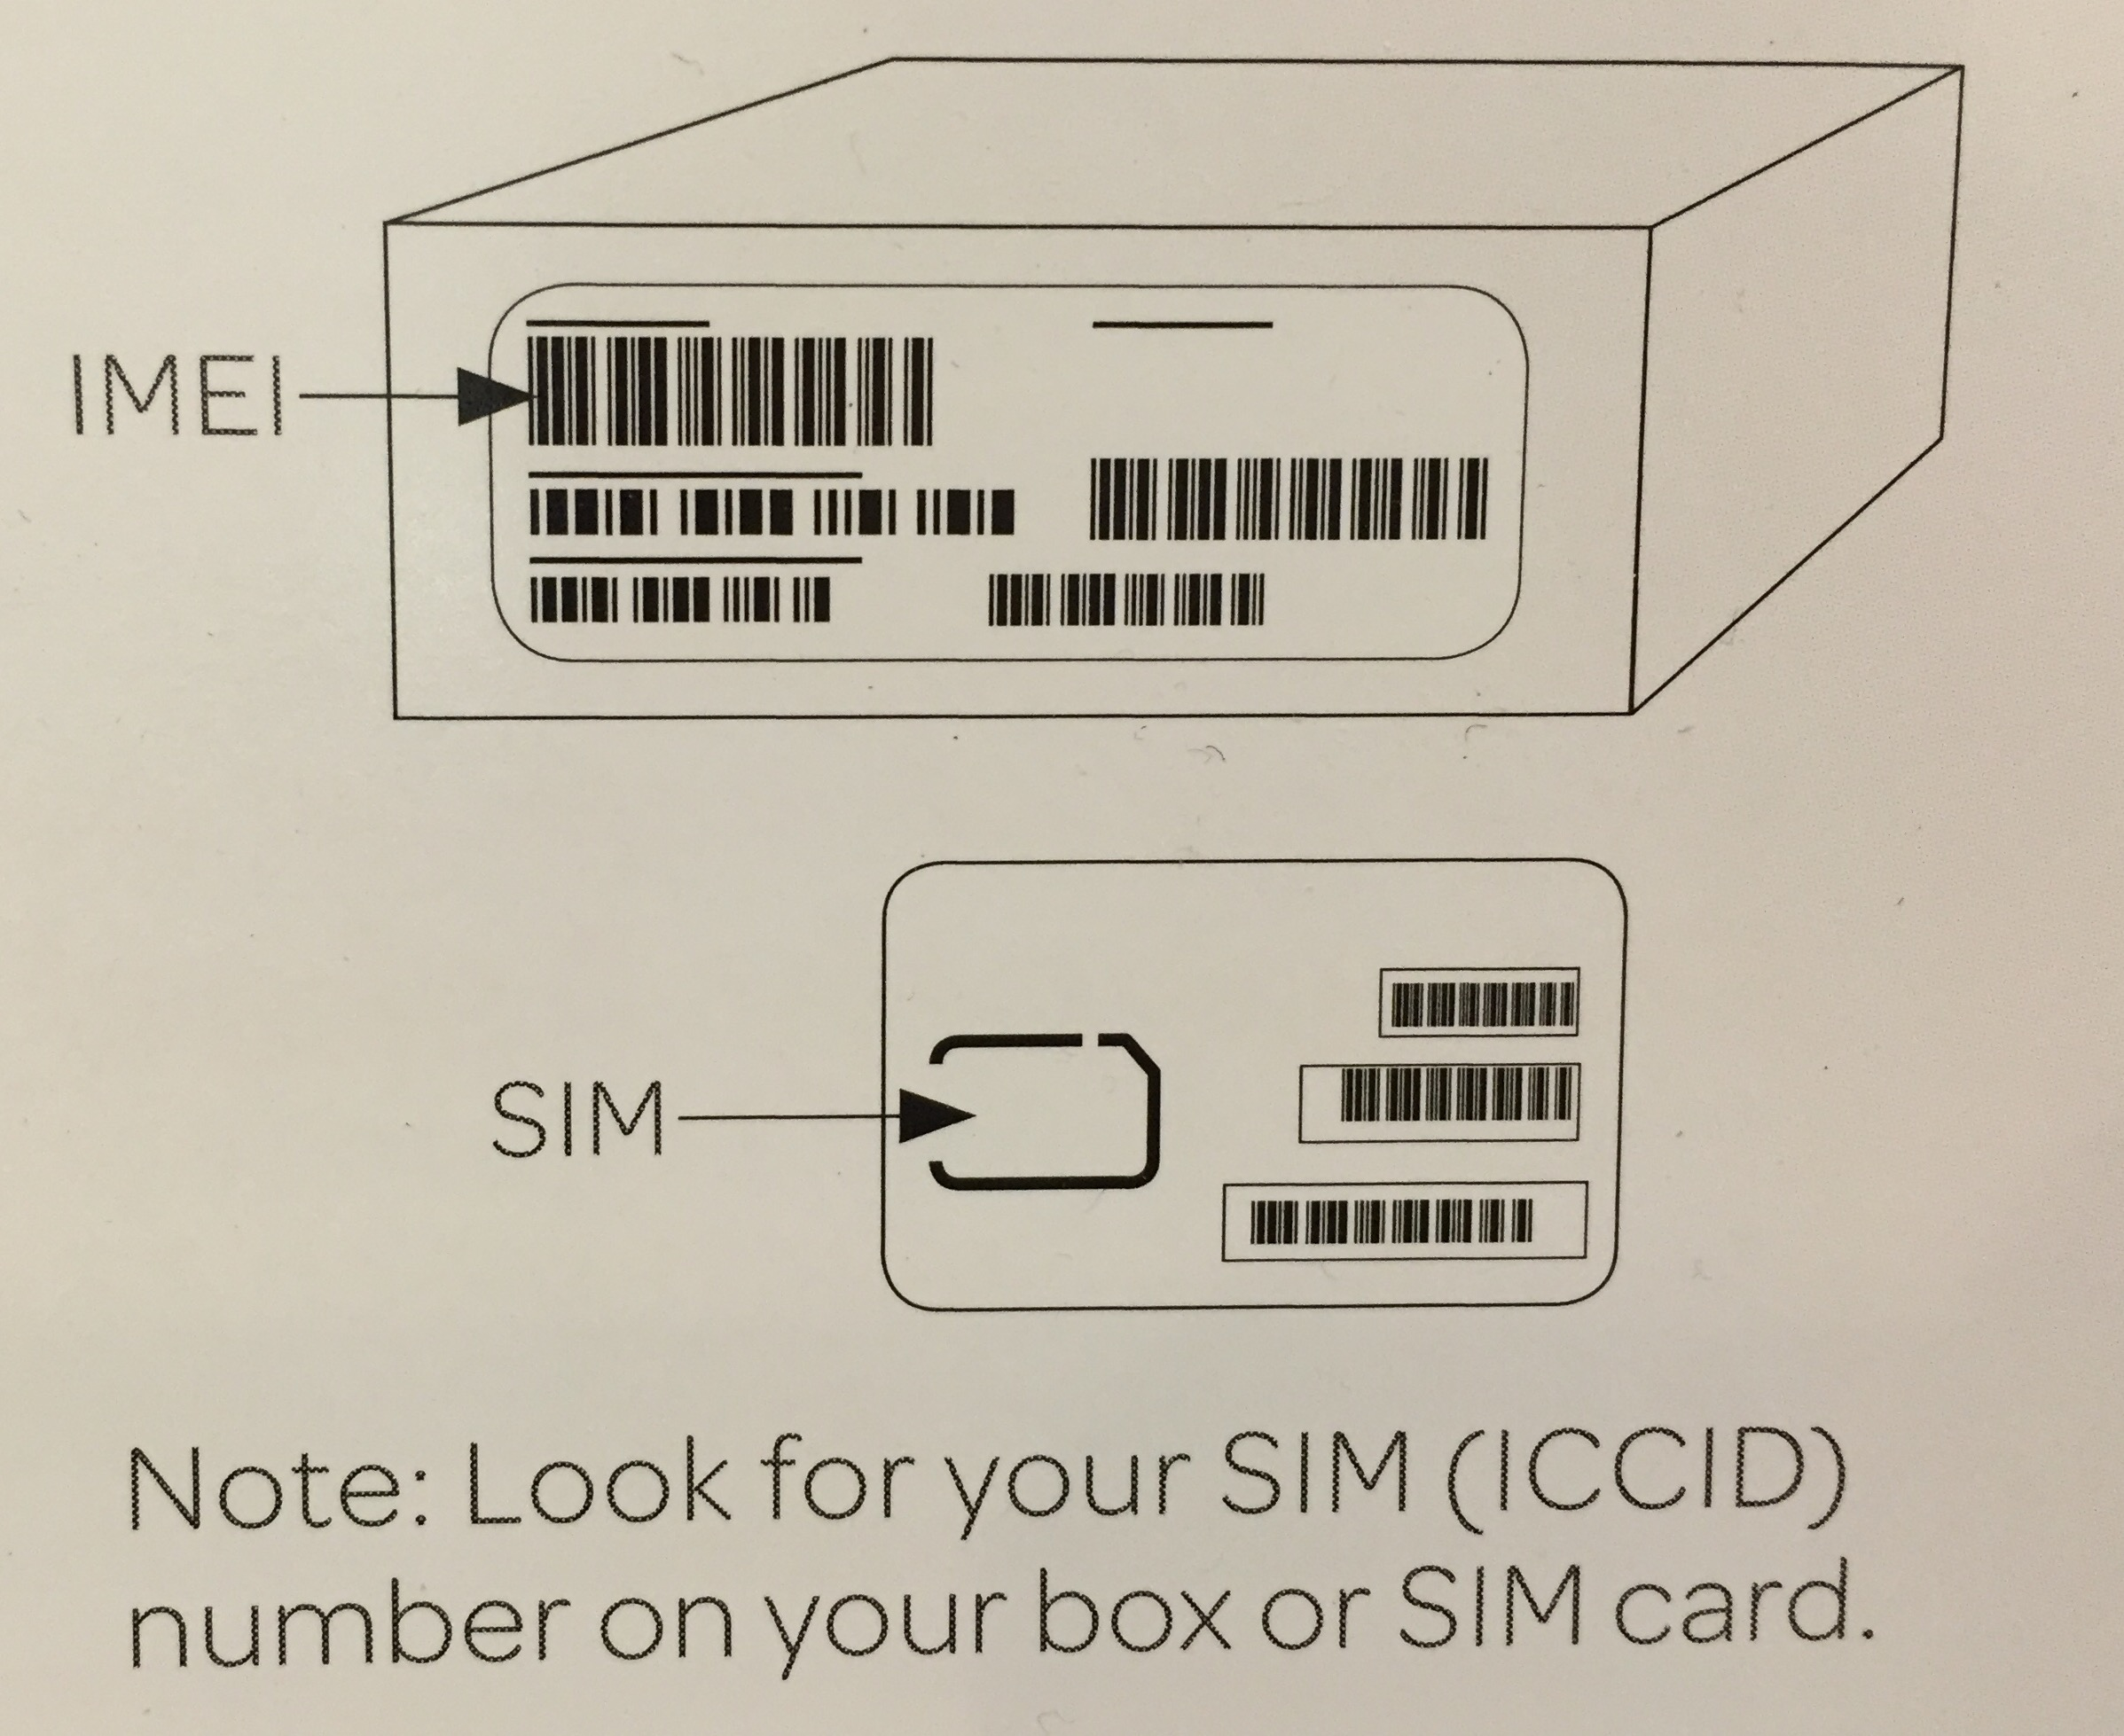 iPhone6 IMEI, SIM numbers